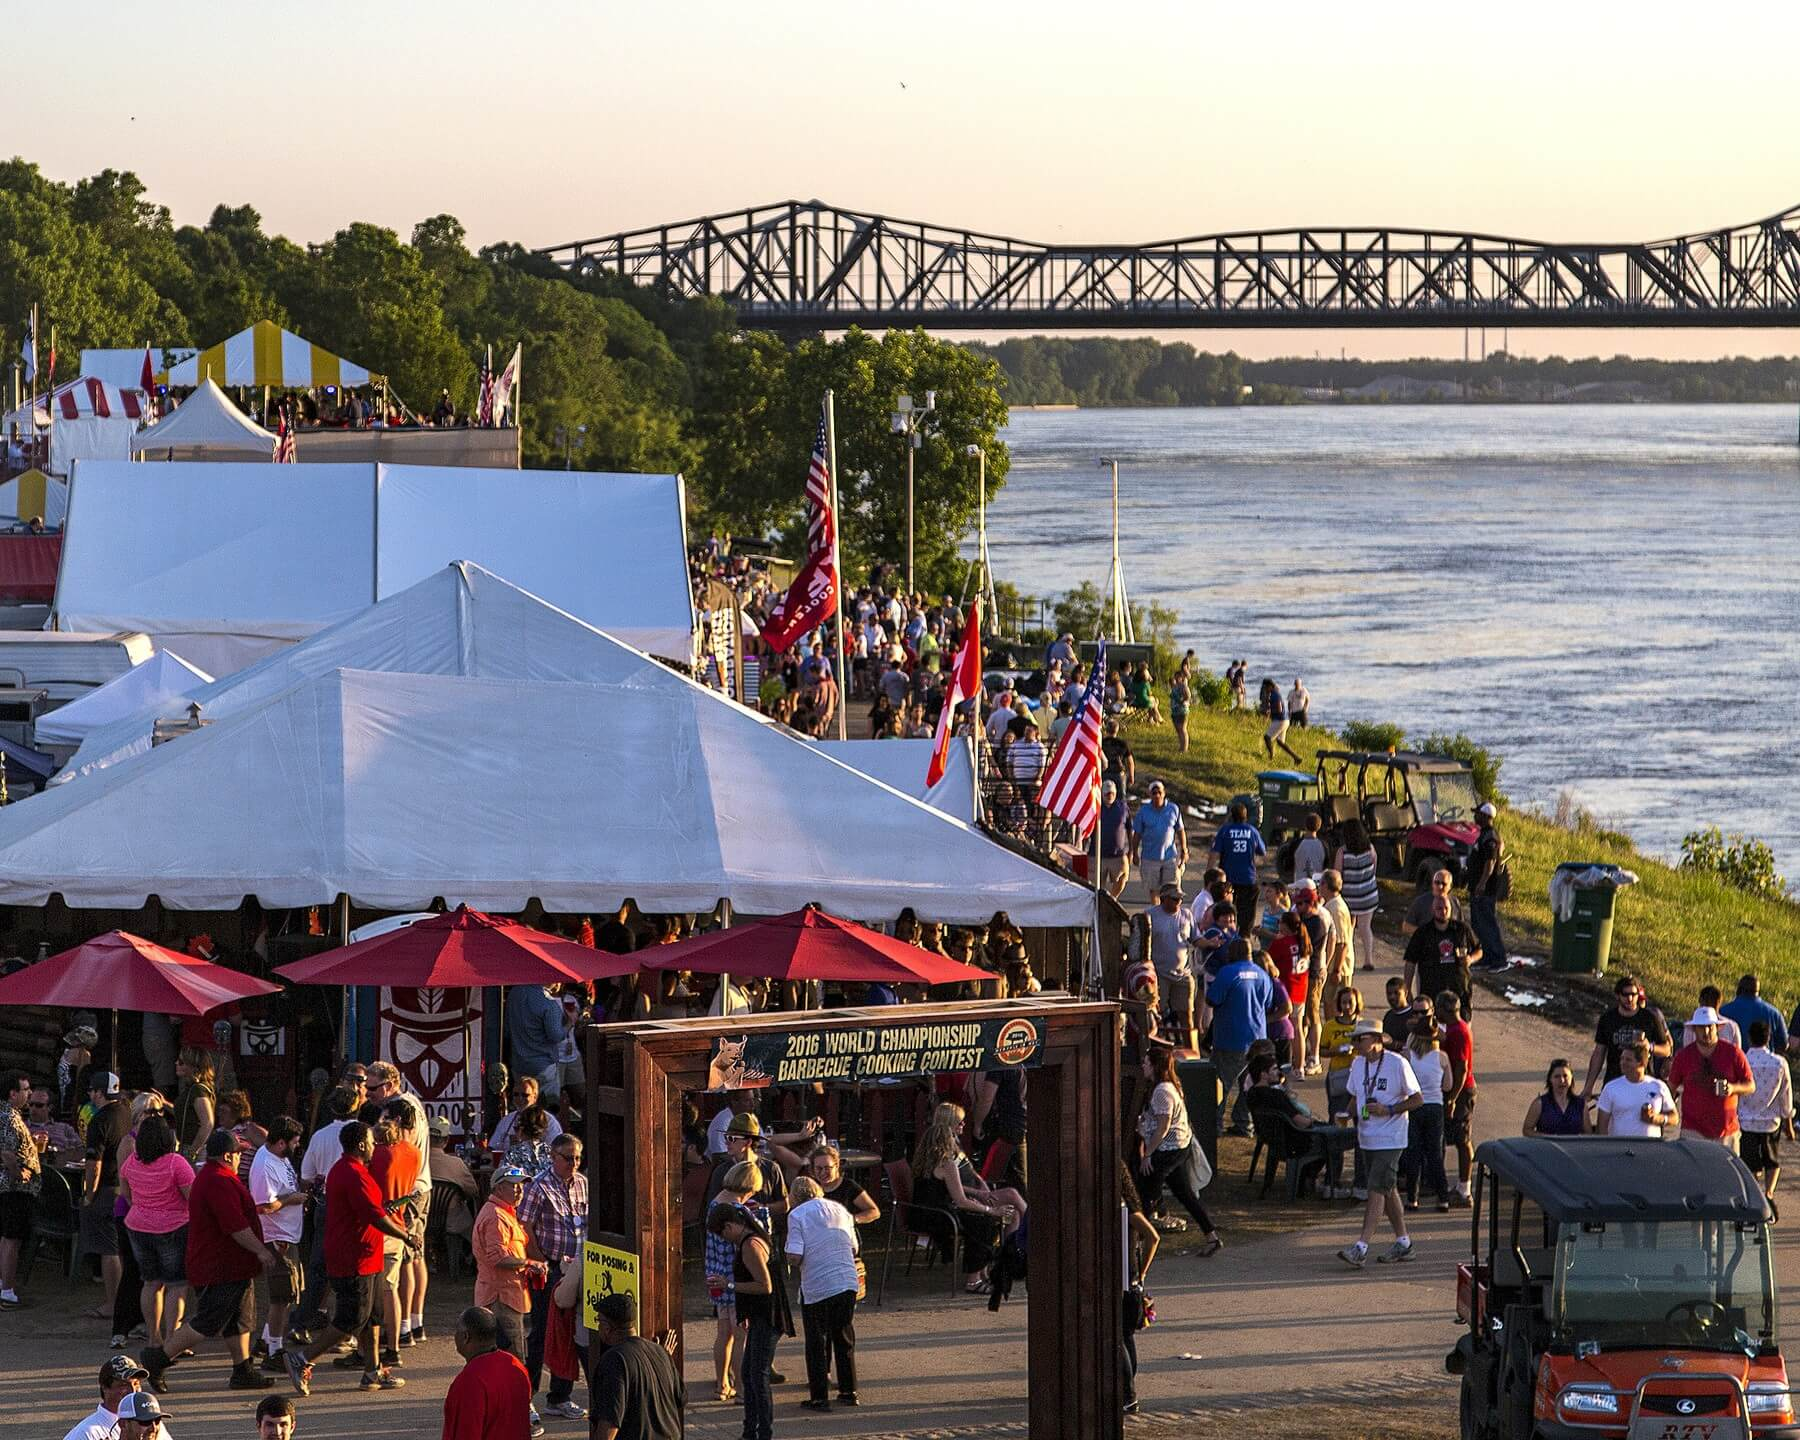 One of the best parts of the World Championship Barbecue Cooking Contest? Strolling along the Mississippi River in Memphis' Tom Lee Park and checking out the teams elaborate tents and displays.